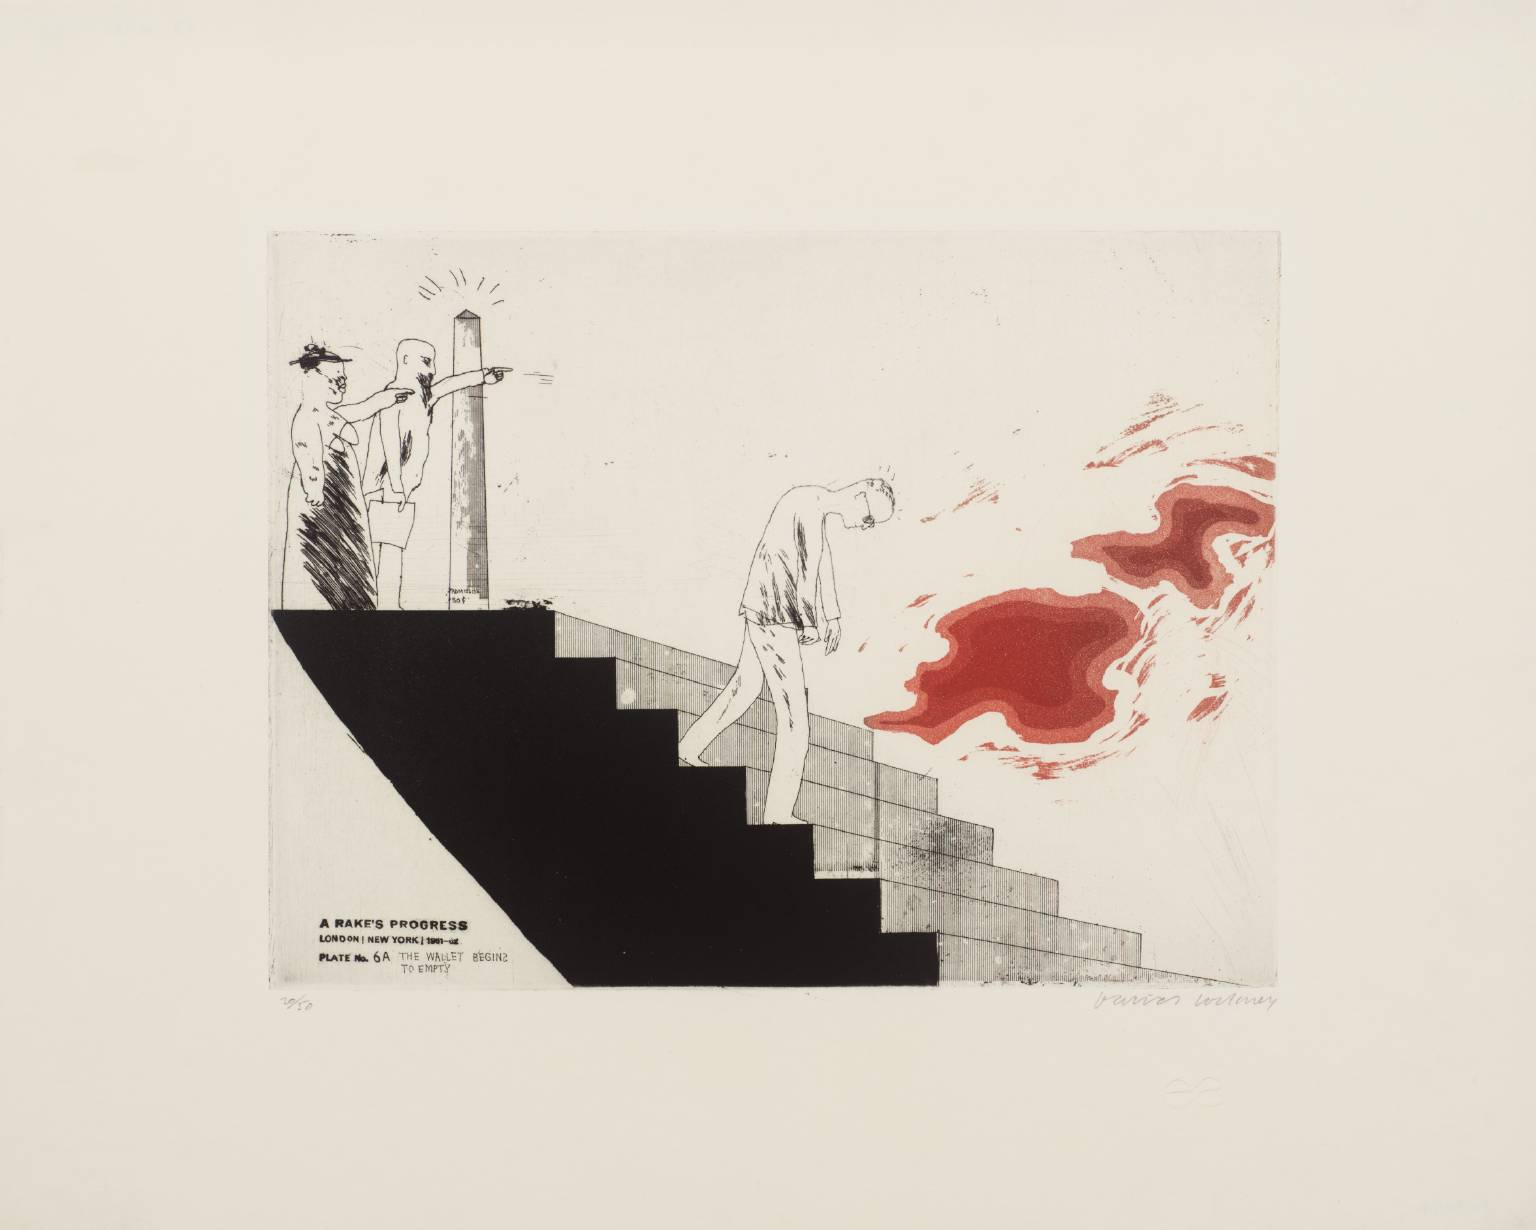 Tate modern gallry 소장 David Hockney prints (A Rake's Progress 중 6a. The Wallet Begins to Empty(1961-3)).jpg